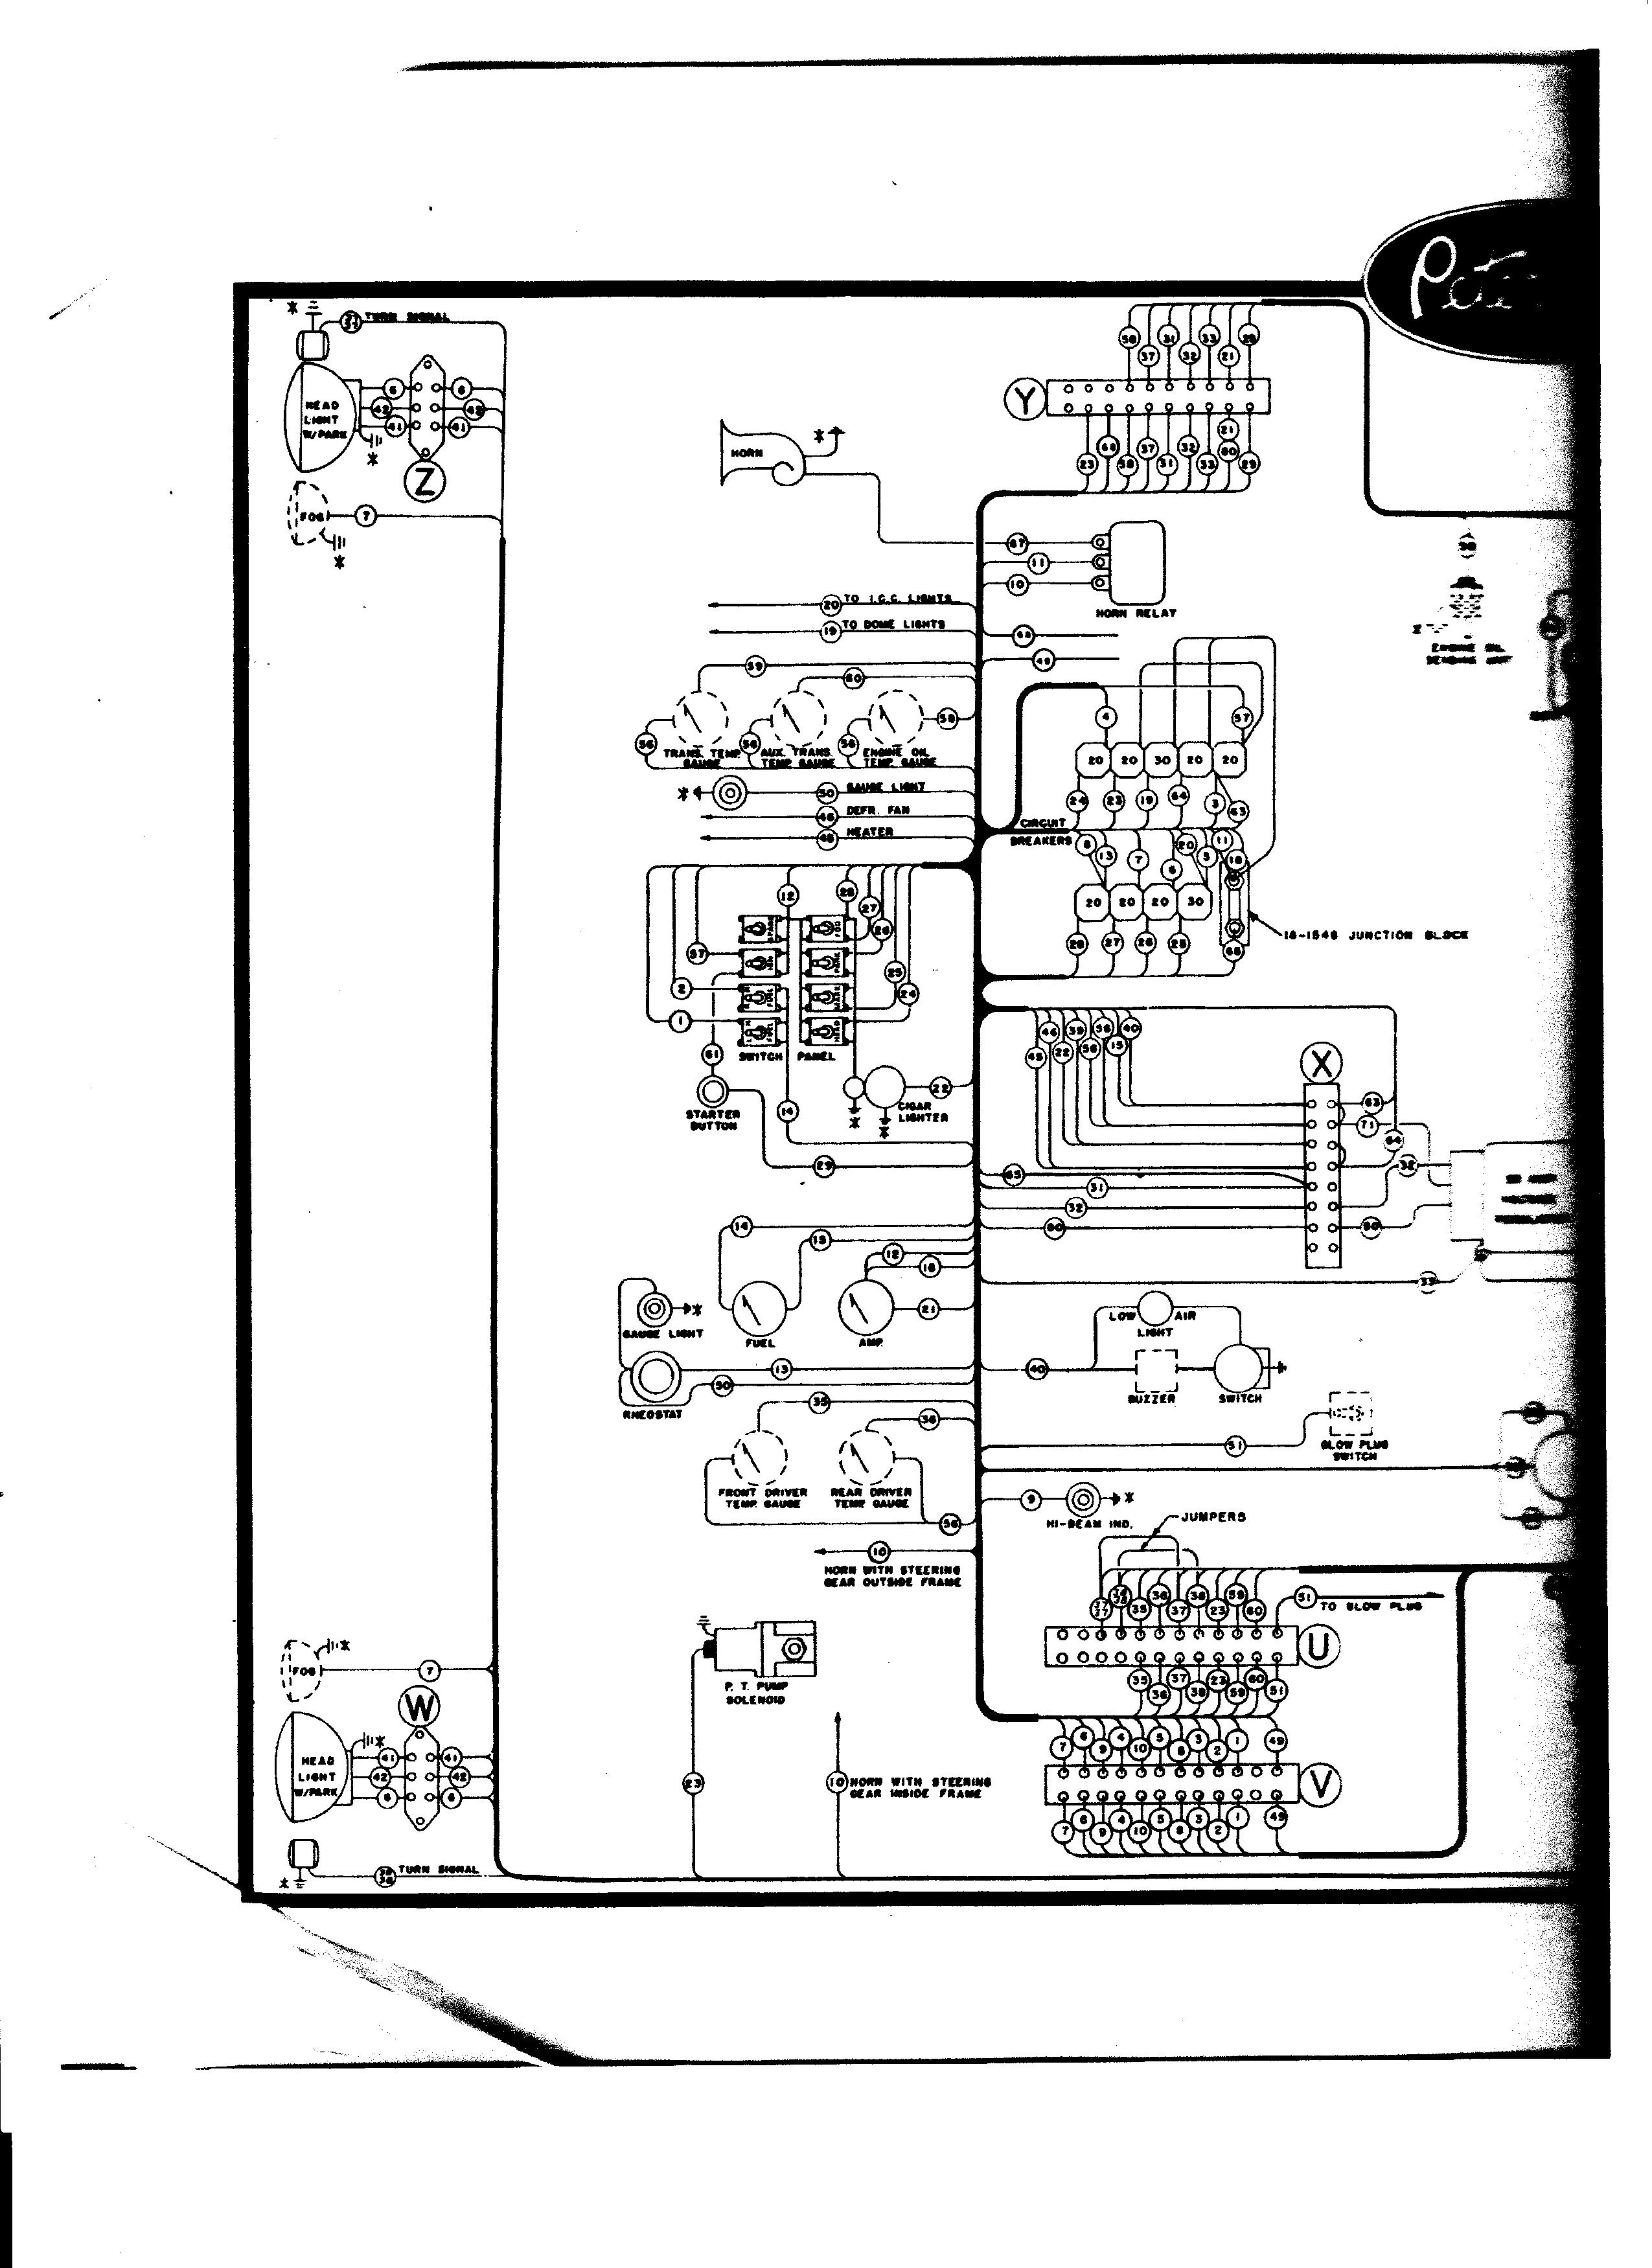 2004 Peterbilt Wiring Schematics For A 335 1994 Peterbilt